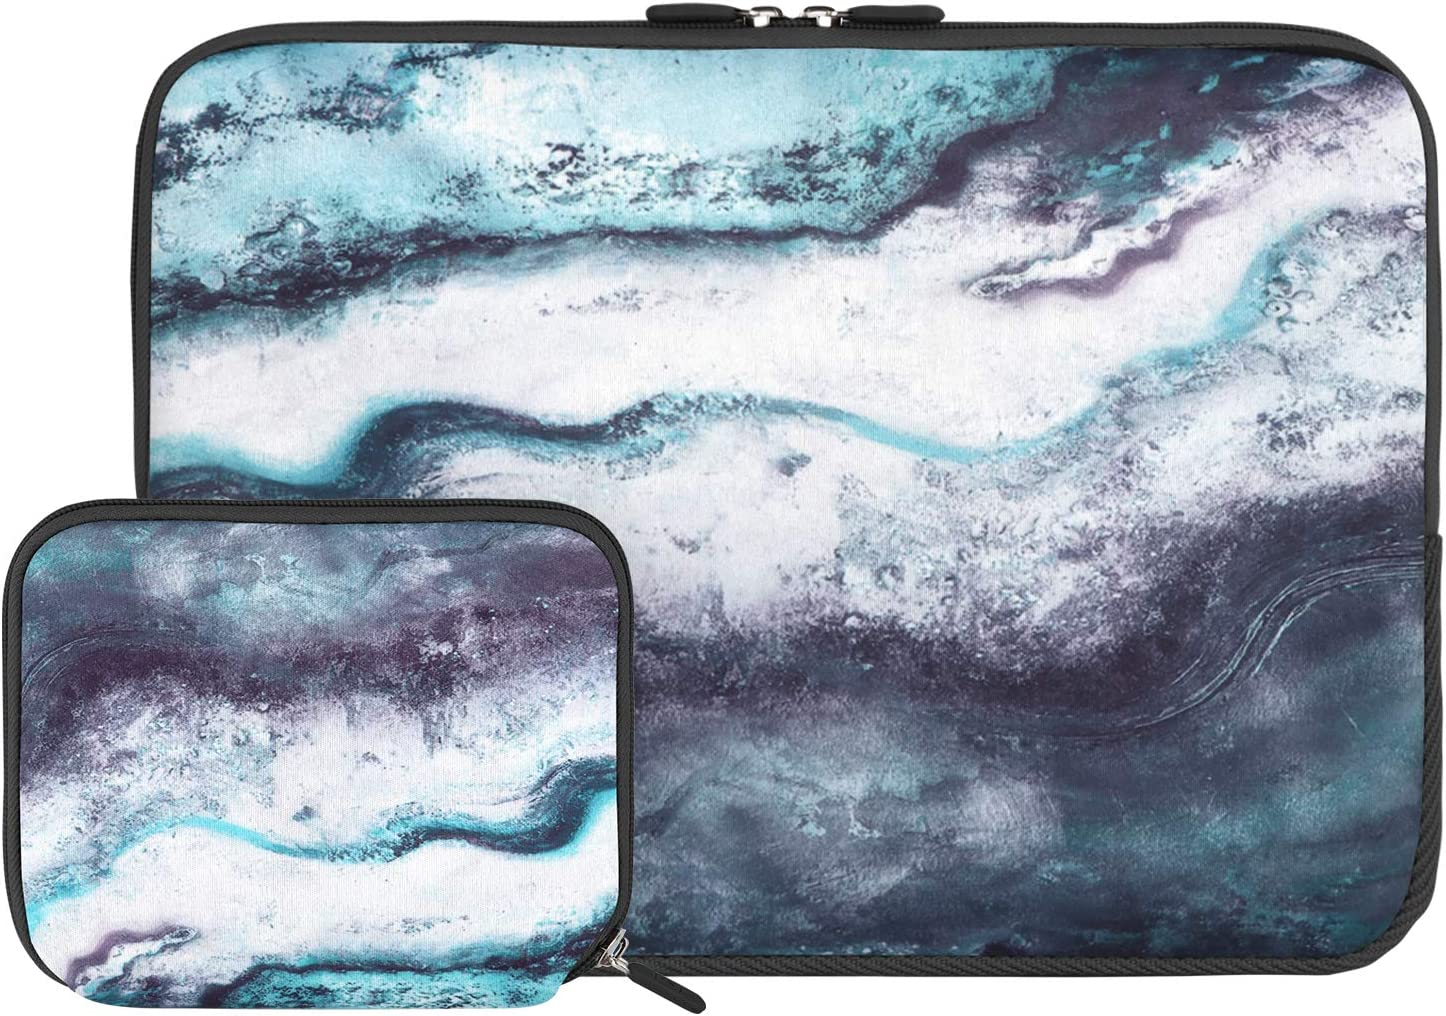 iCasso Laptop Neoprene Sleeve Bag, Protective 13-13.3 inch Laptop Cover Bag Compatible with MacBook Pro, MacBook Air, Notebook Computer, Waterproof Carrying Briefcase with Small Case(Green Marble)